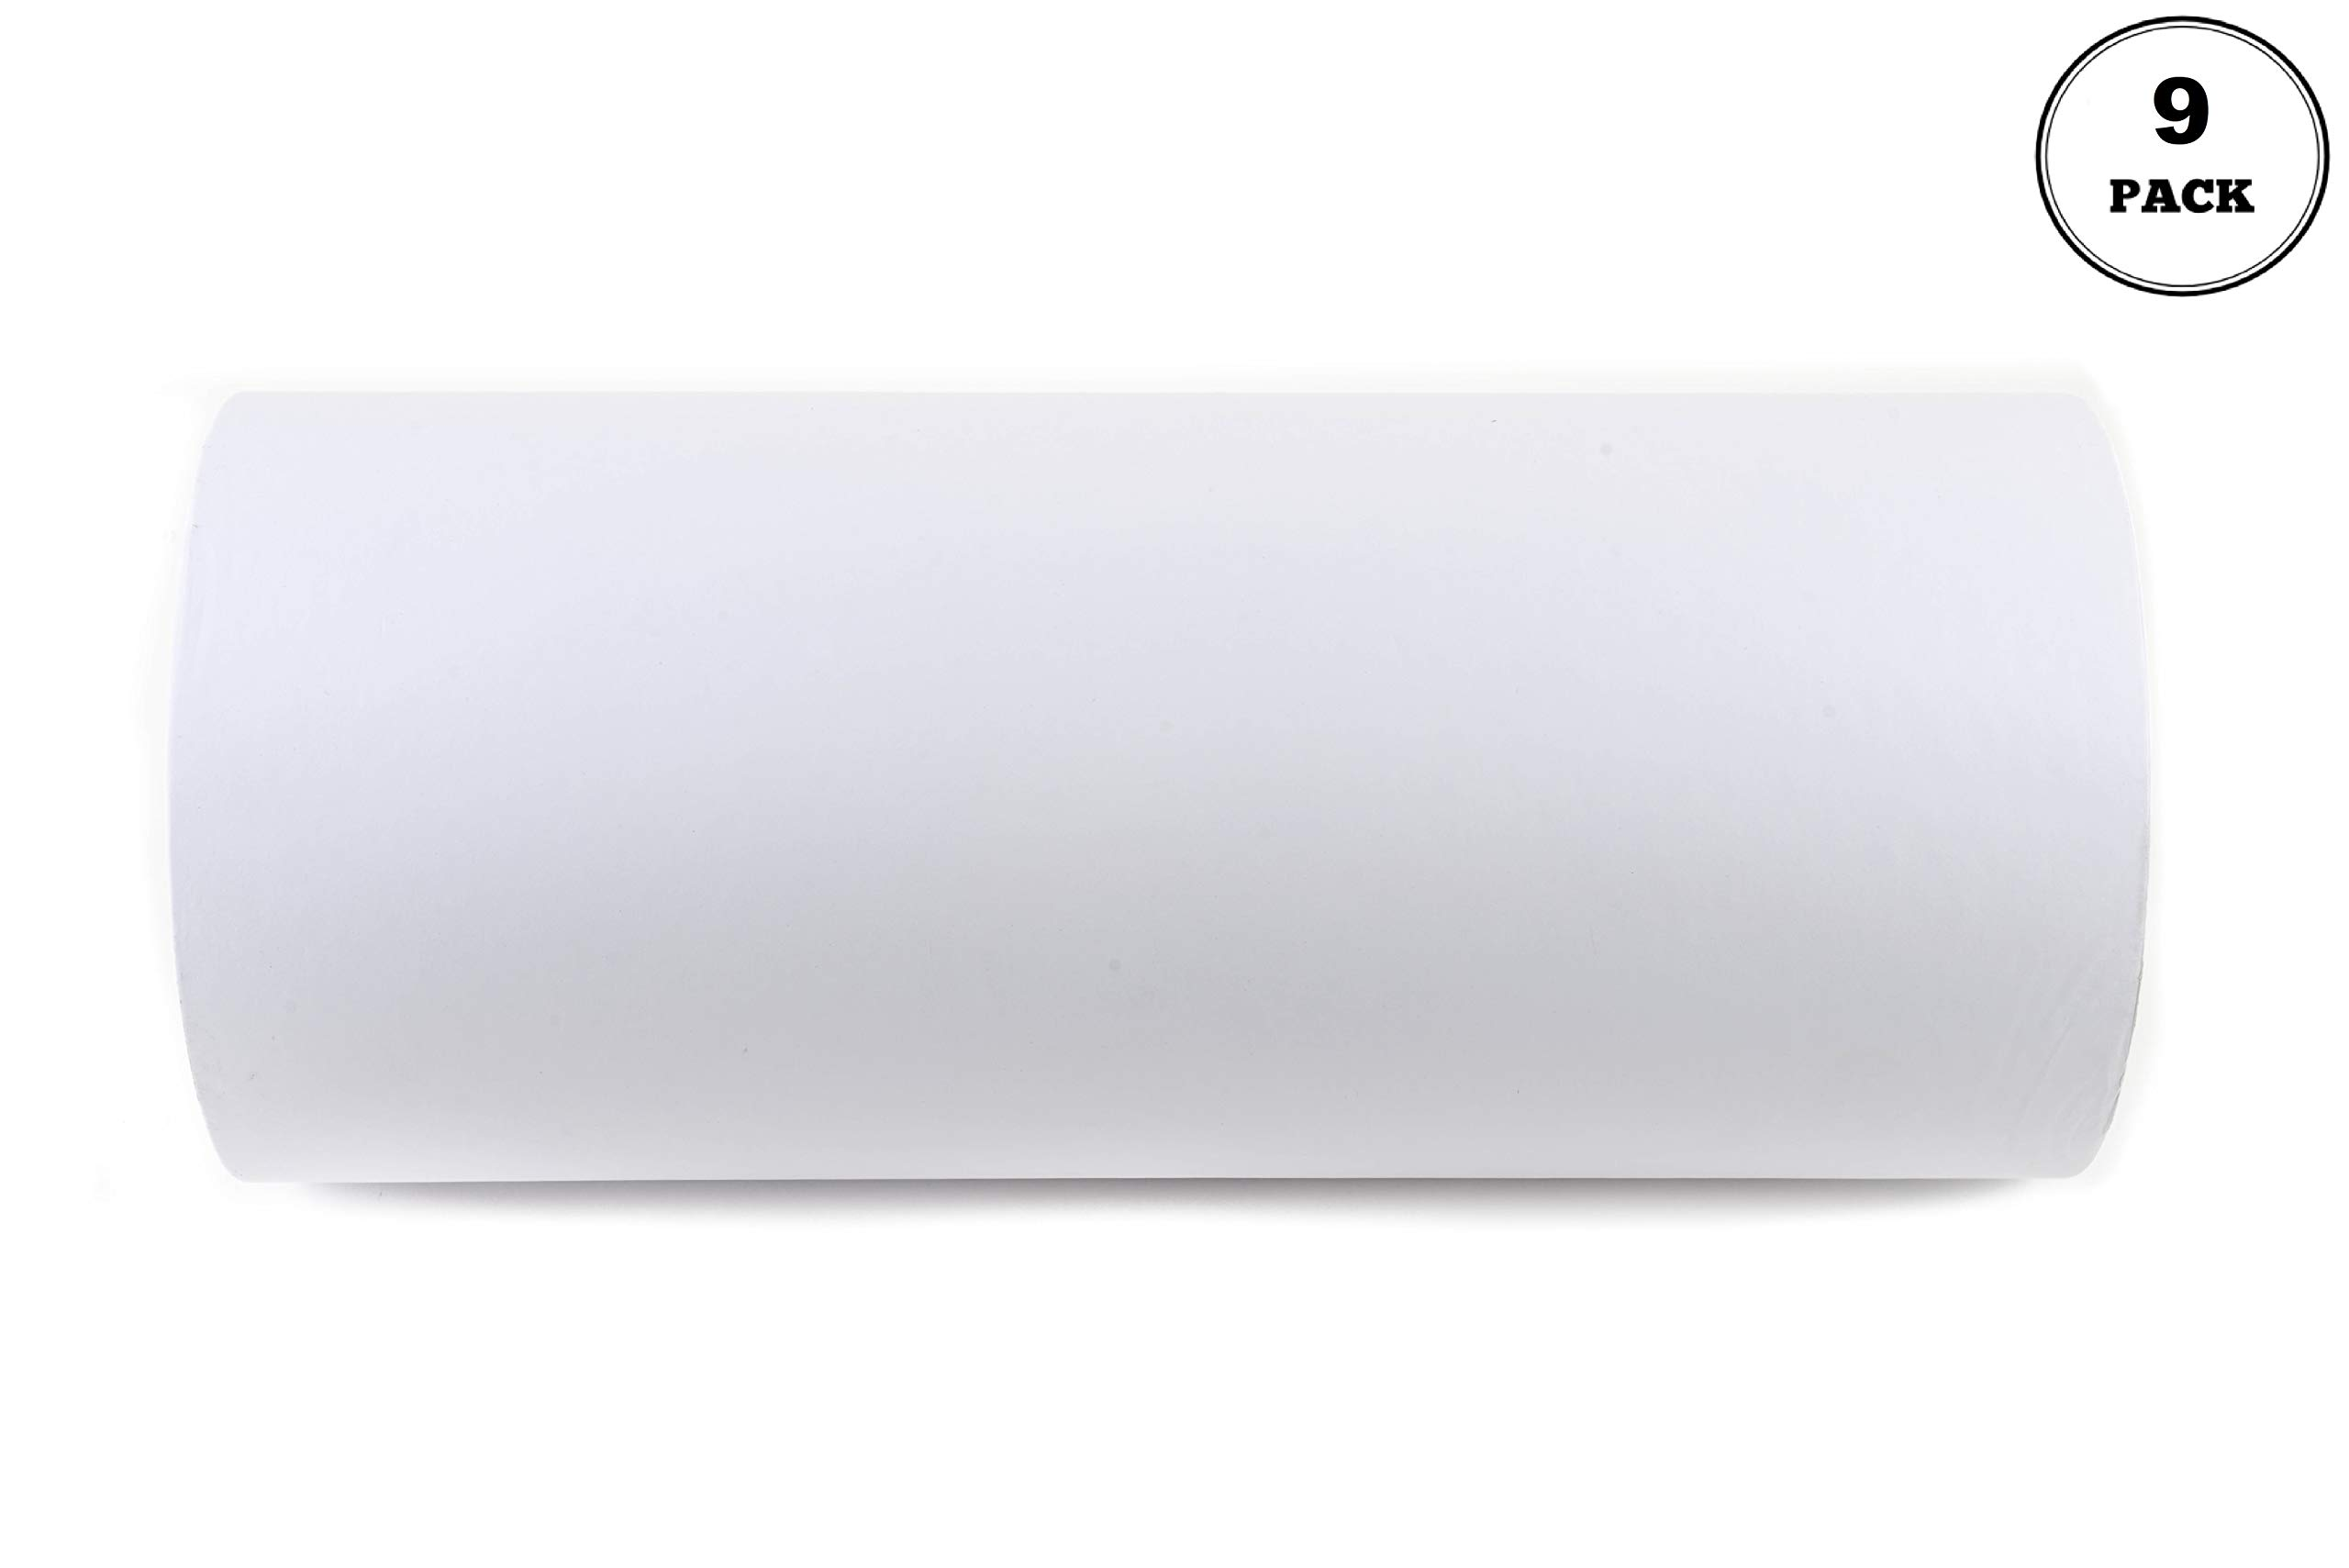 [9 Pack] EcoQuality Butcher Paper 15'' x 1000 ft - Roll for Butcher, Freezer Paper Great for Restaurants, Food Service, Butcher Paper, Meat Paper, Freezer Roll, Butcher Roll, MG15